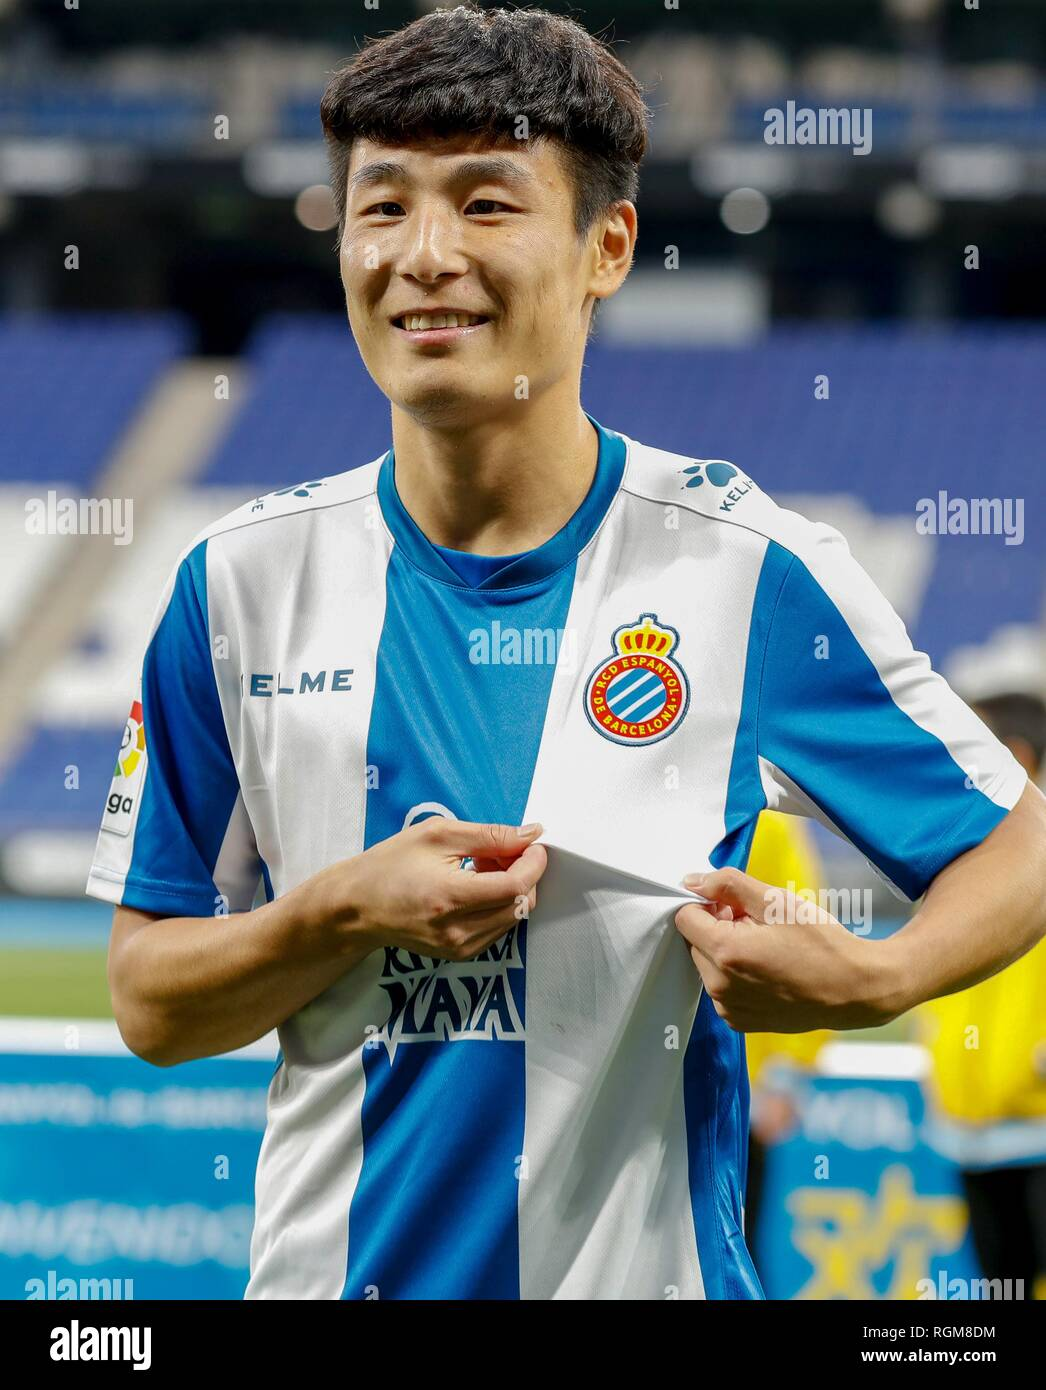 (190130) -- MADRID, Jan. 30, 2019 (Xinhua) -- Wu Lei poses for a photo in Espanyol home stadium in Barcelona, Spain, Jan. 29, 2019. Spanish Liga Santander club, Espanyol presented the new coming Chinese striker Wu Lei to the fans and press on Tuesday. (Xinhua/Joan Gosa) - Stock Image